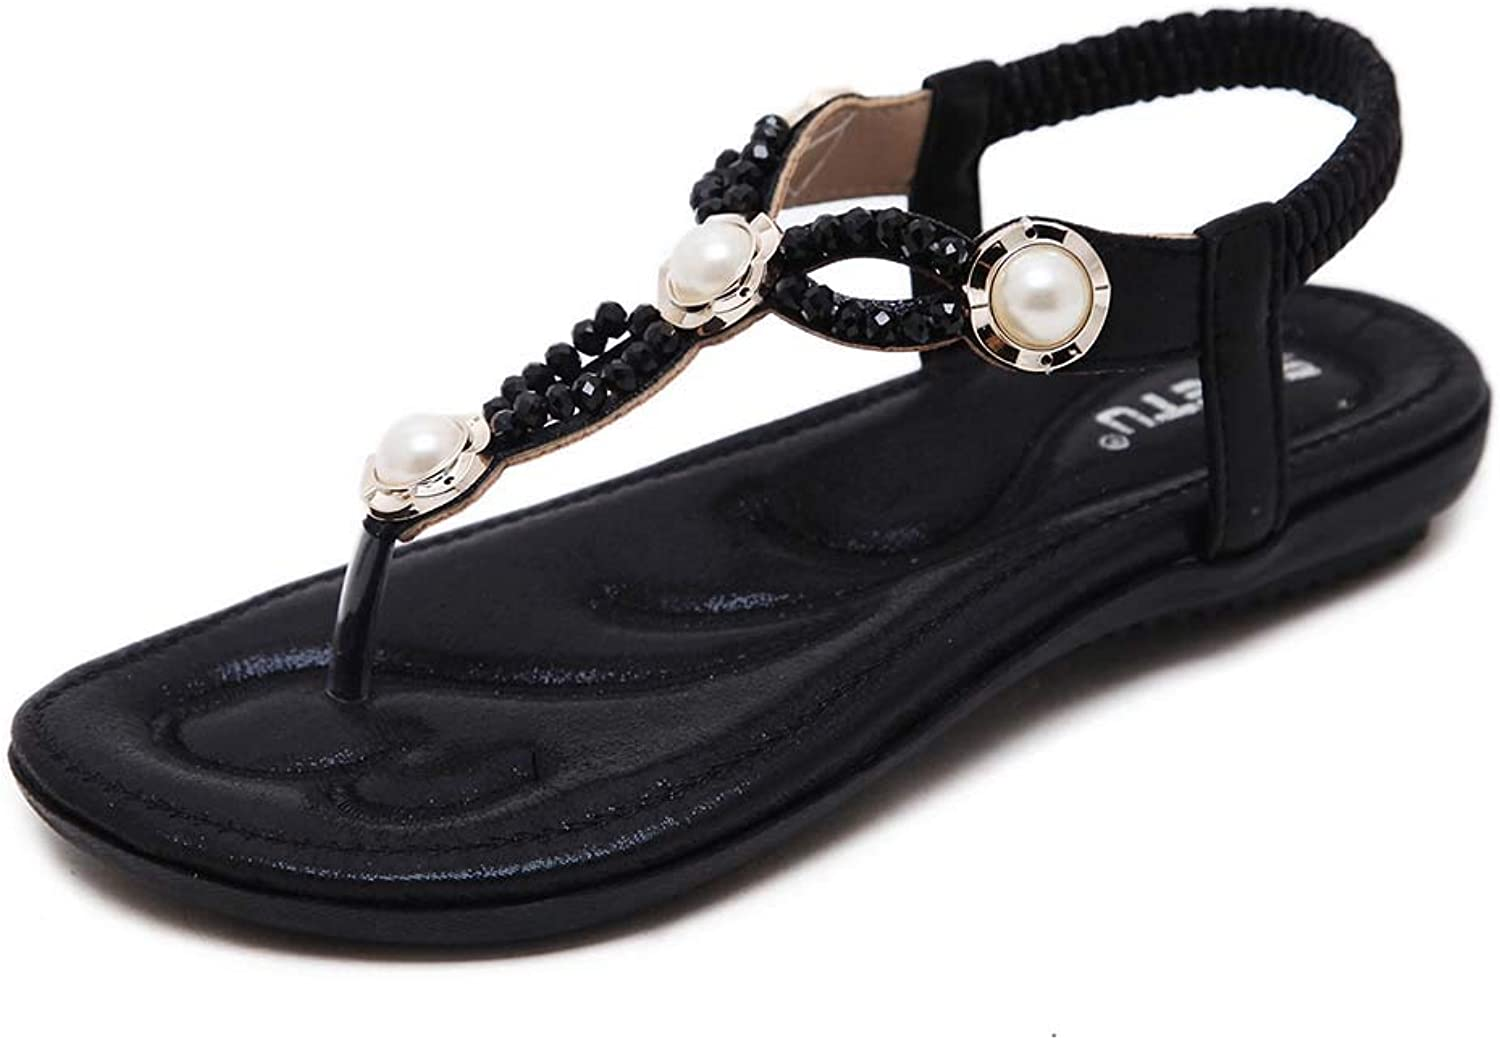 Women Jeweled Flat Sandals shoes, Bohemian Beaded T Strap Thong shoes Flip Flop shoes